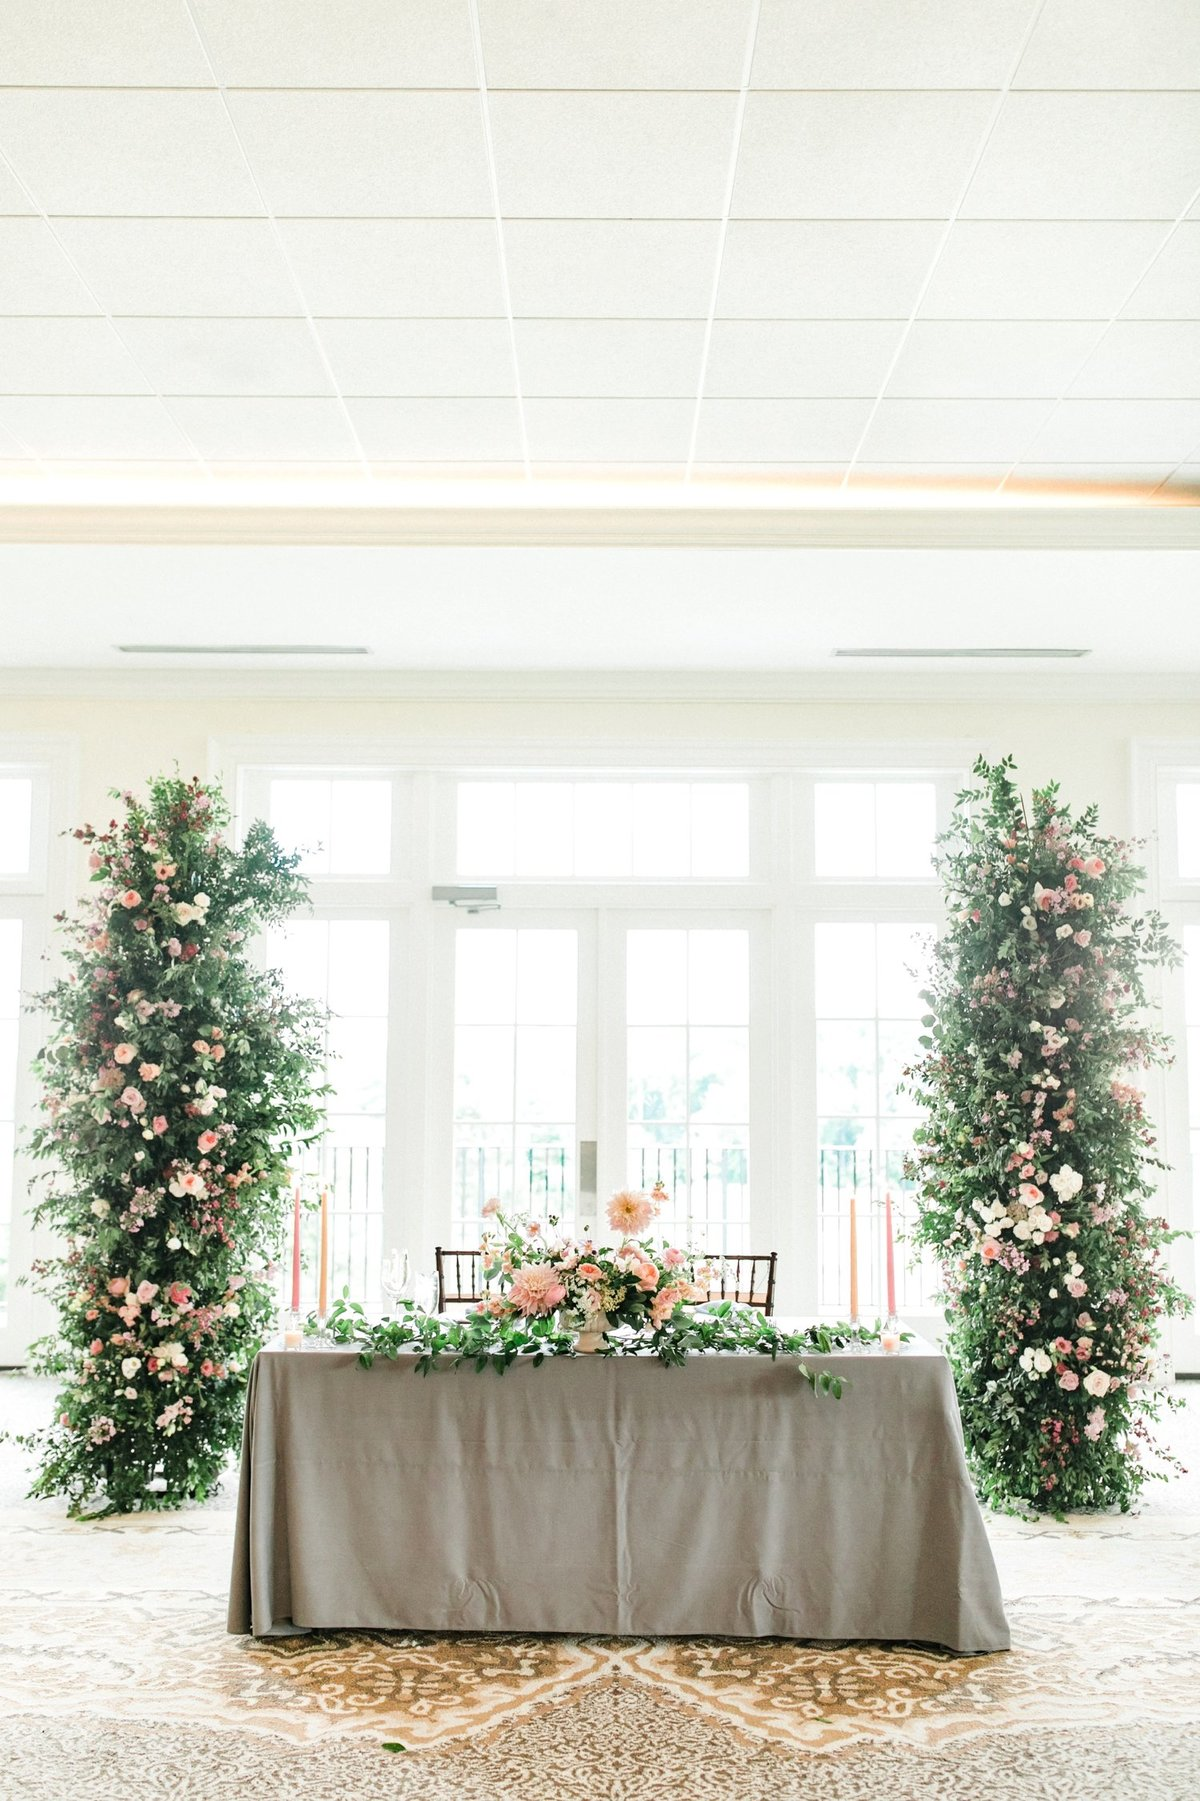 virginia_english garden wedding__2471